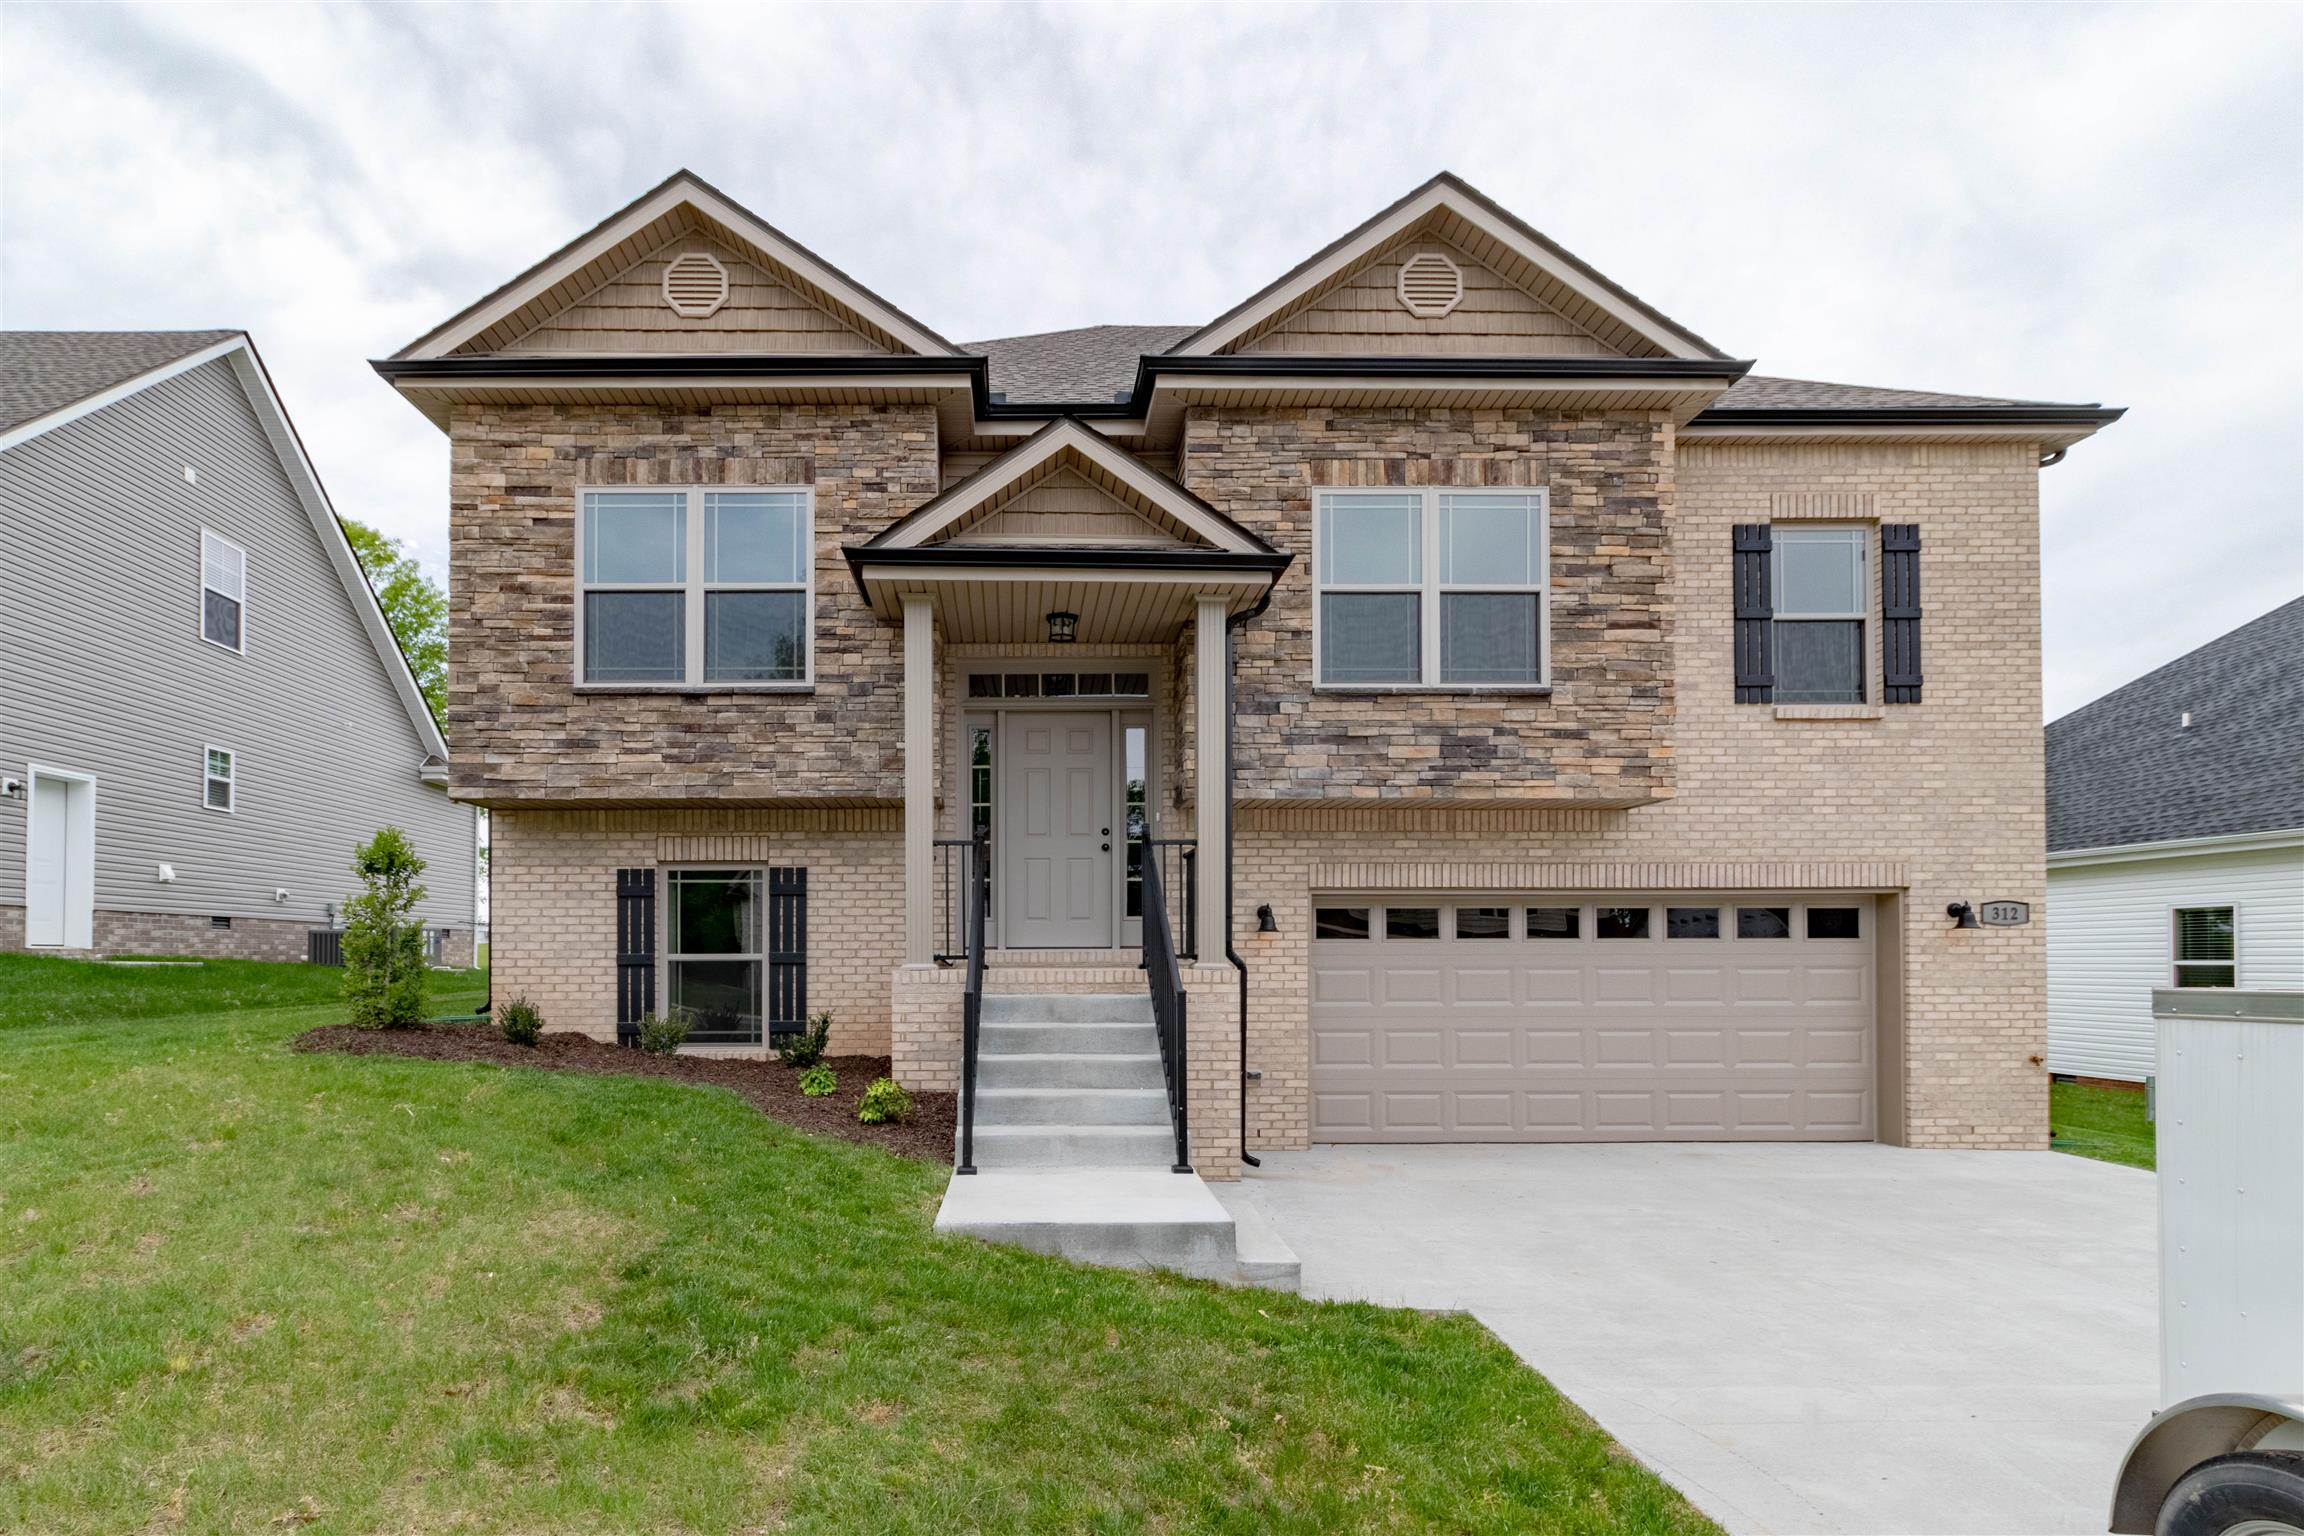 328 Chase Dr, Clarksville, TN 37043 - Clarksville, TN real estate listing